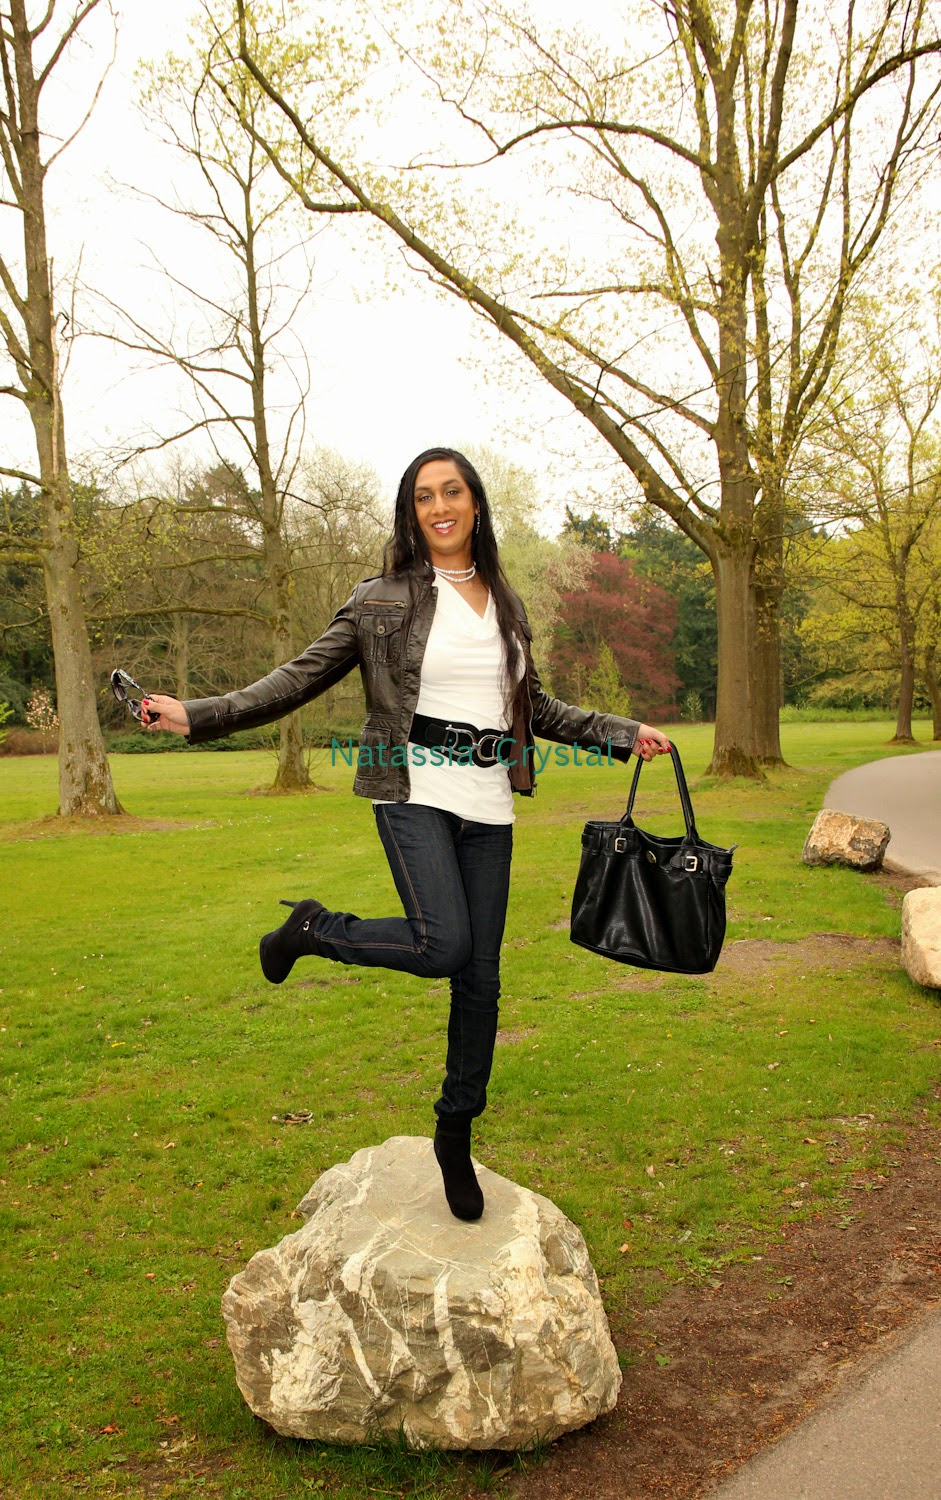 Natassia balancing on a rock in high heels